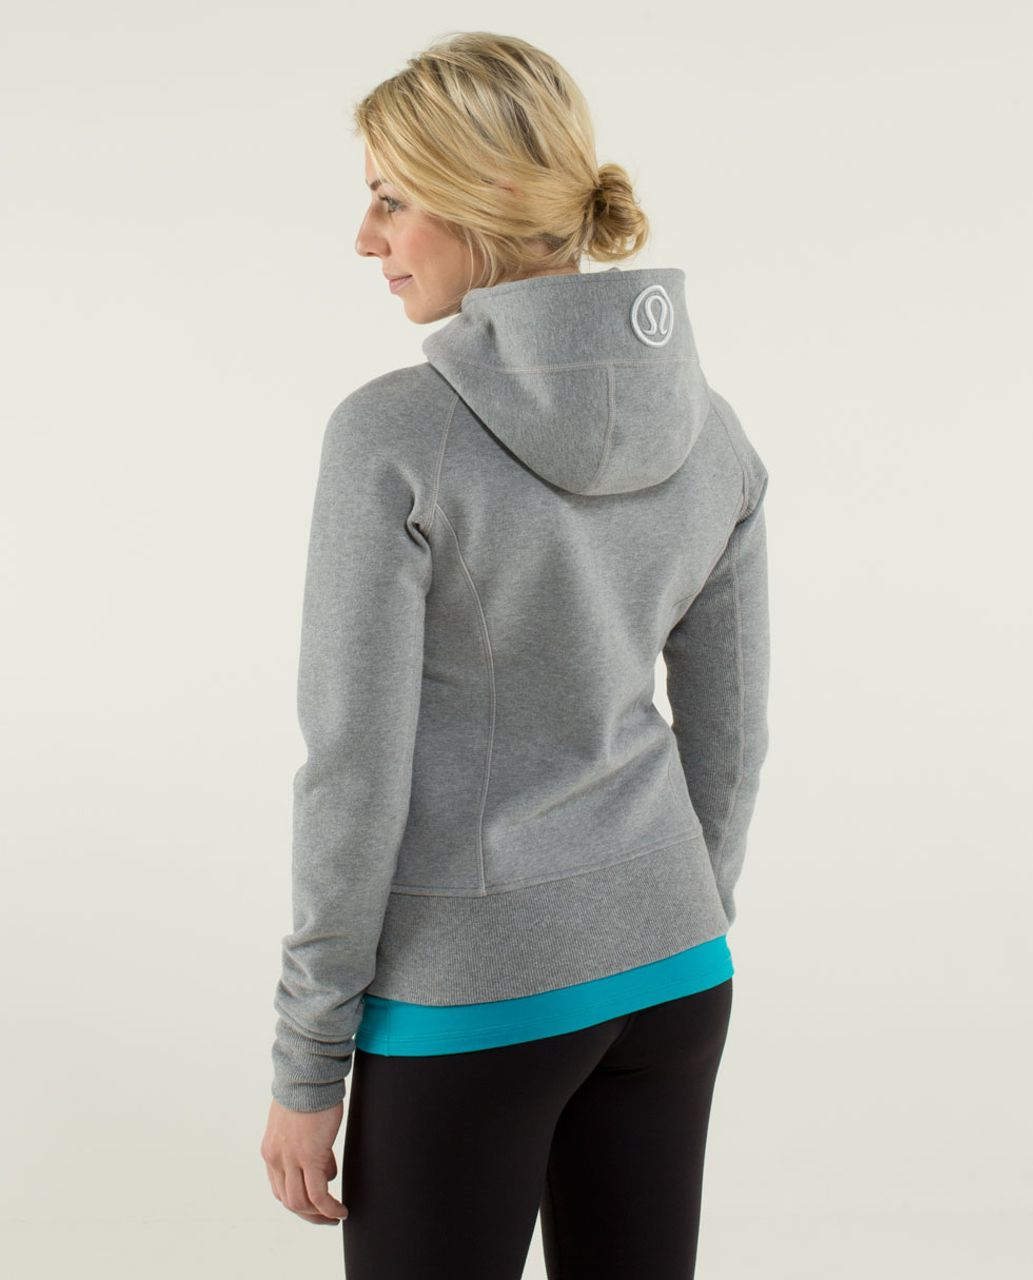 Lululemon Scuba Hoodie *Stretch (Lined Hood) - Heathered Medium Grey / Silver Spoon / Heathered Medium Grey